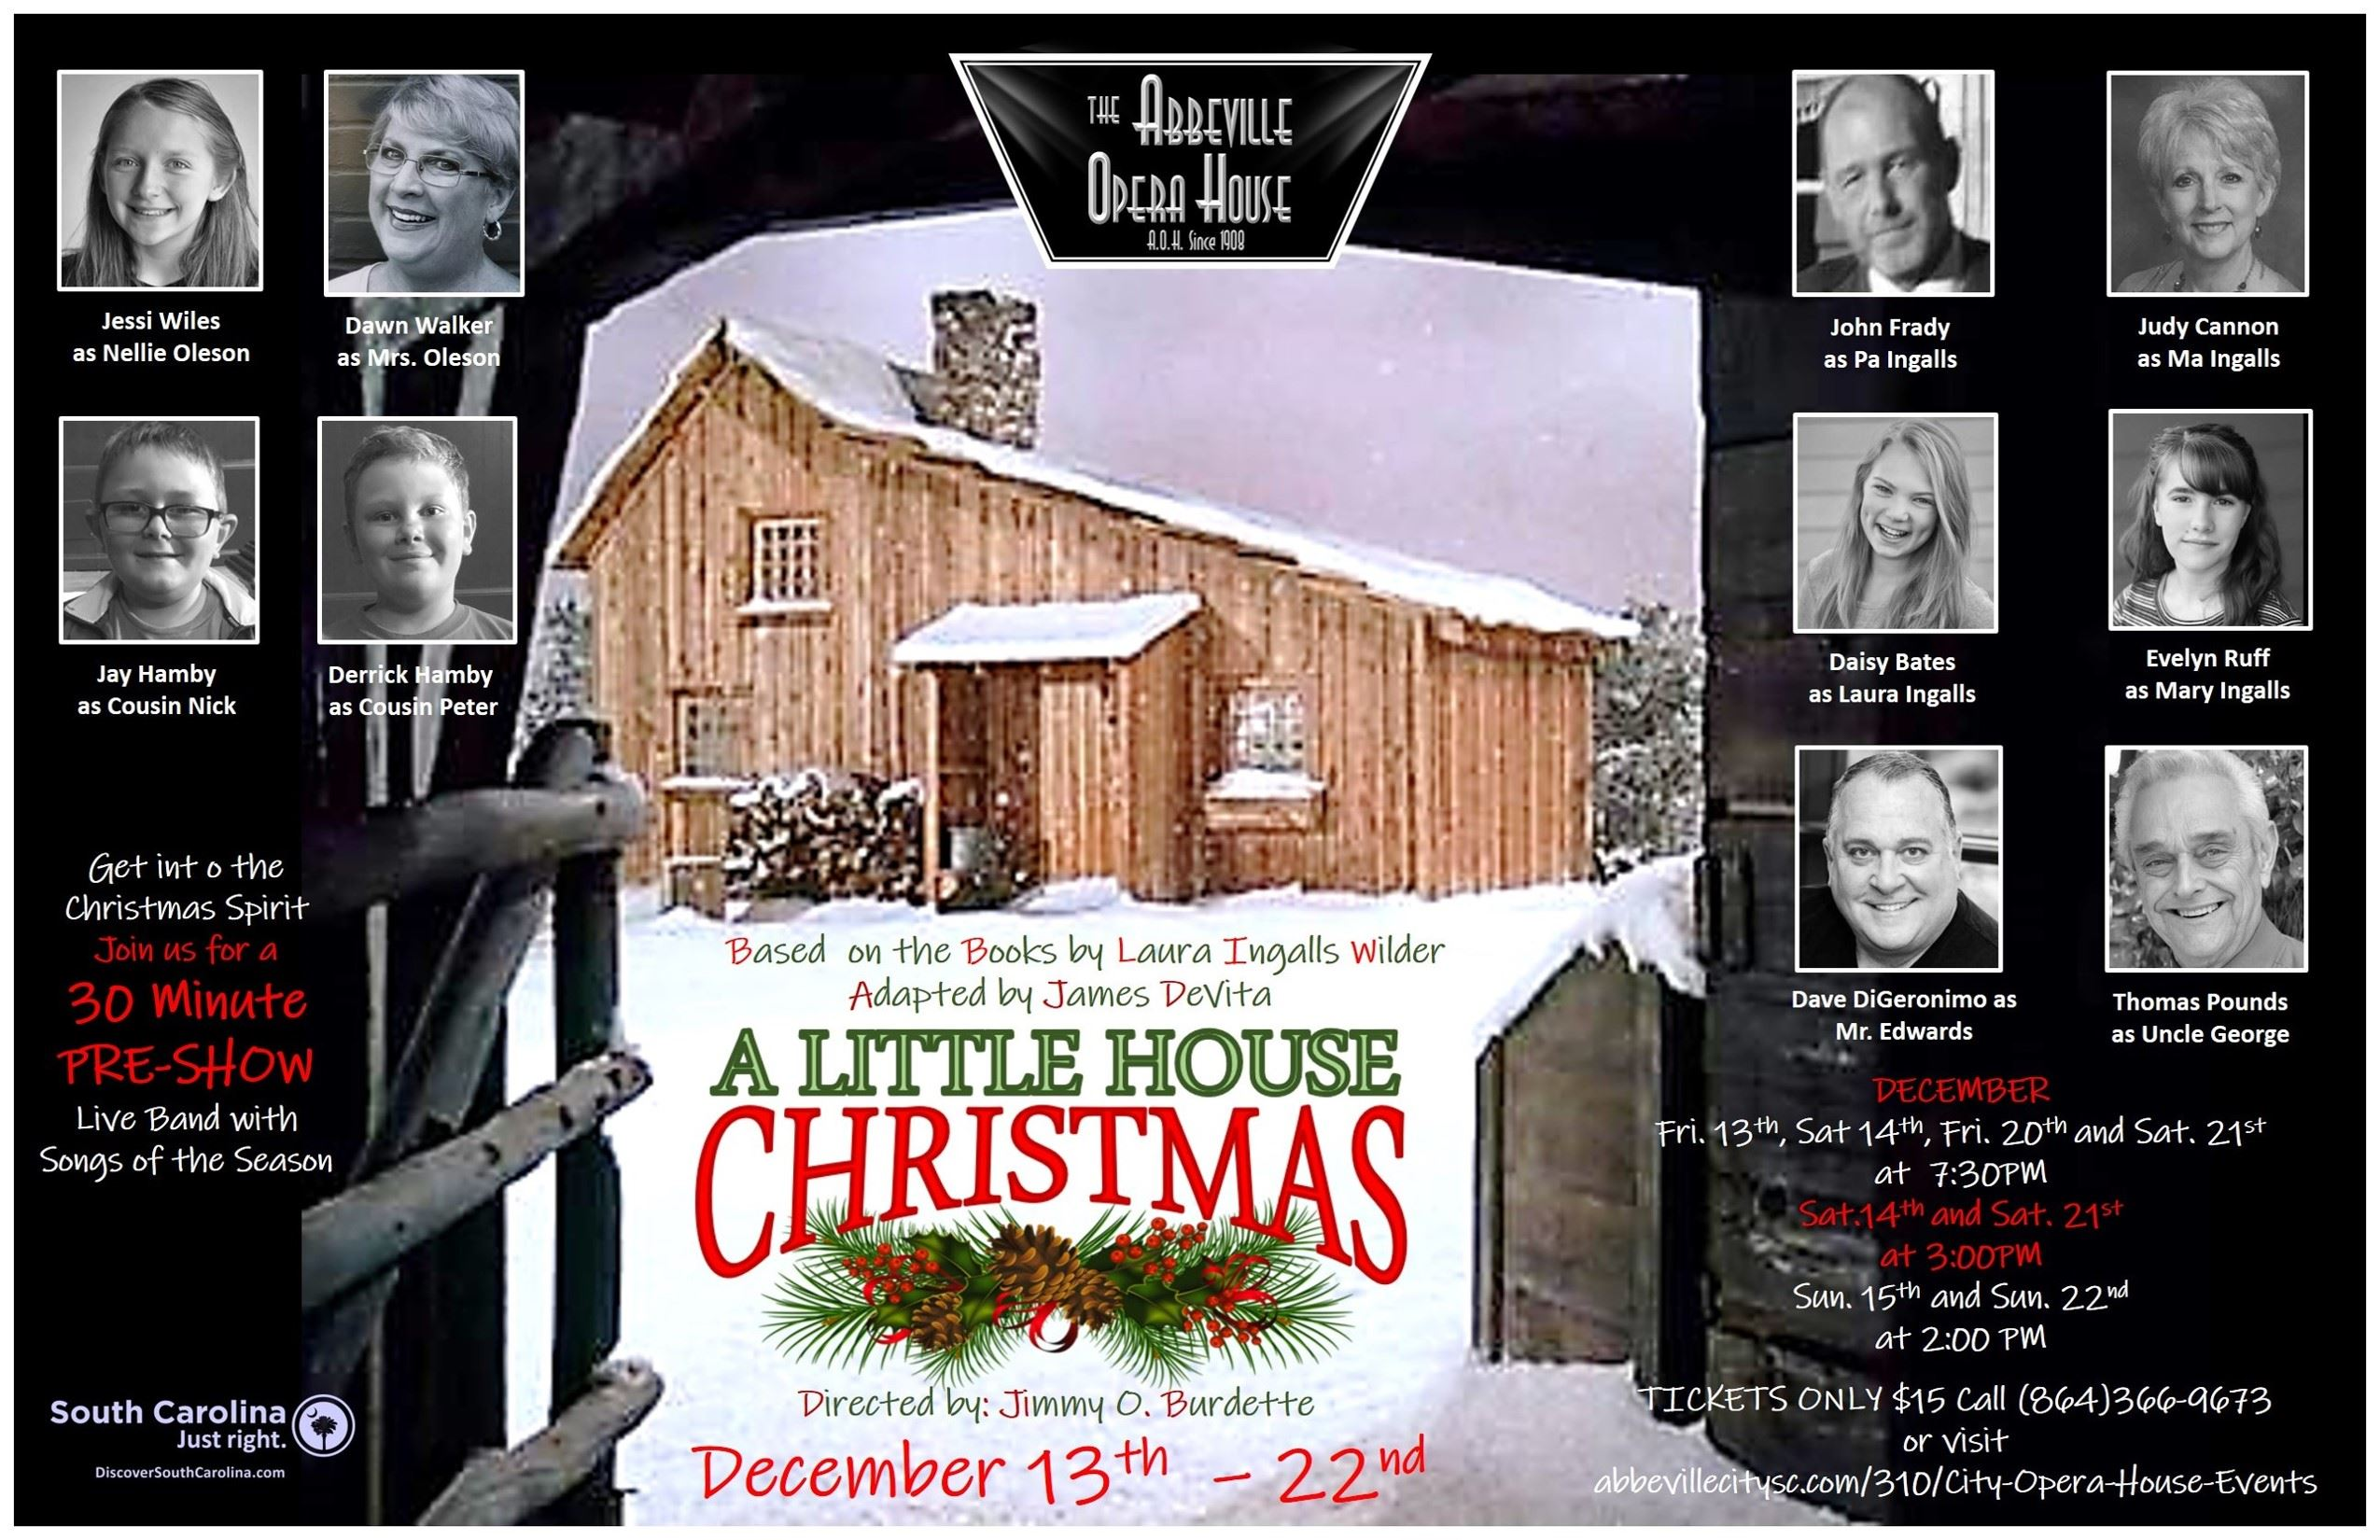 BWW Interview: Dave DiGeronimo of A LITTLE HOUSE CHRISTMAS at Abbeville Opera House